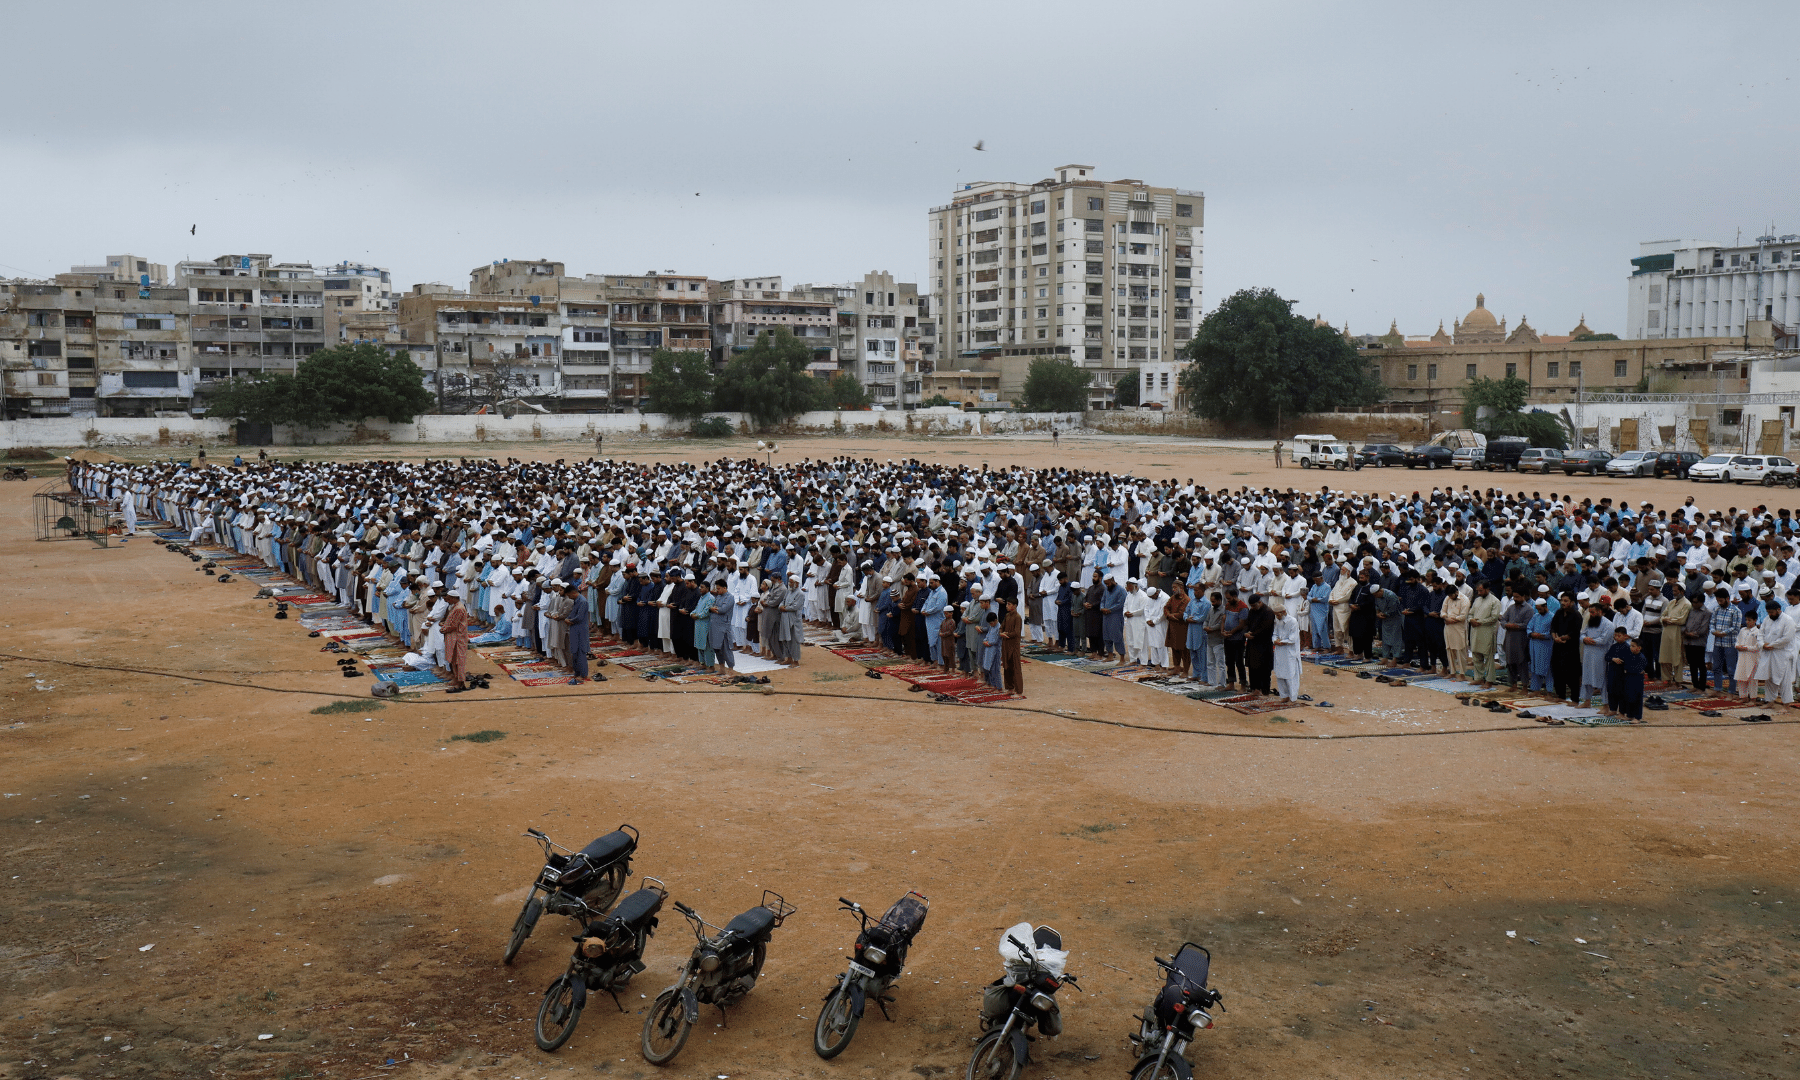 People attend Eidul Azha prayers at a playground, as the outbreak of the coronavirus continues, in Karachi. — Reuters